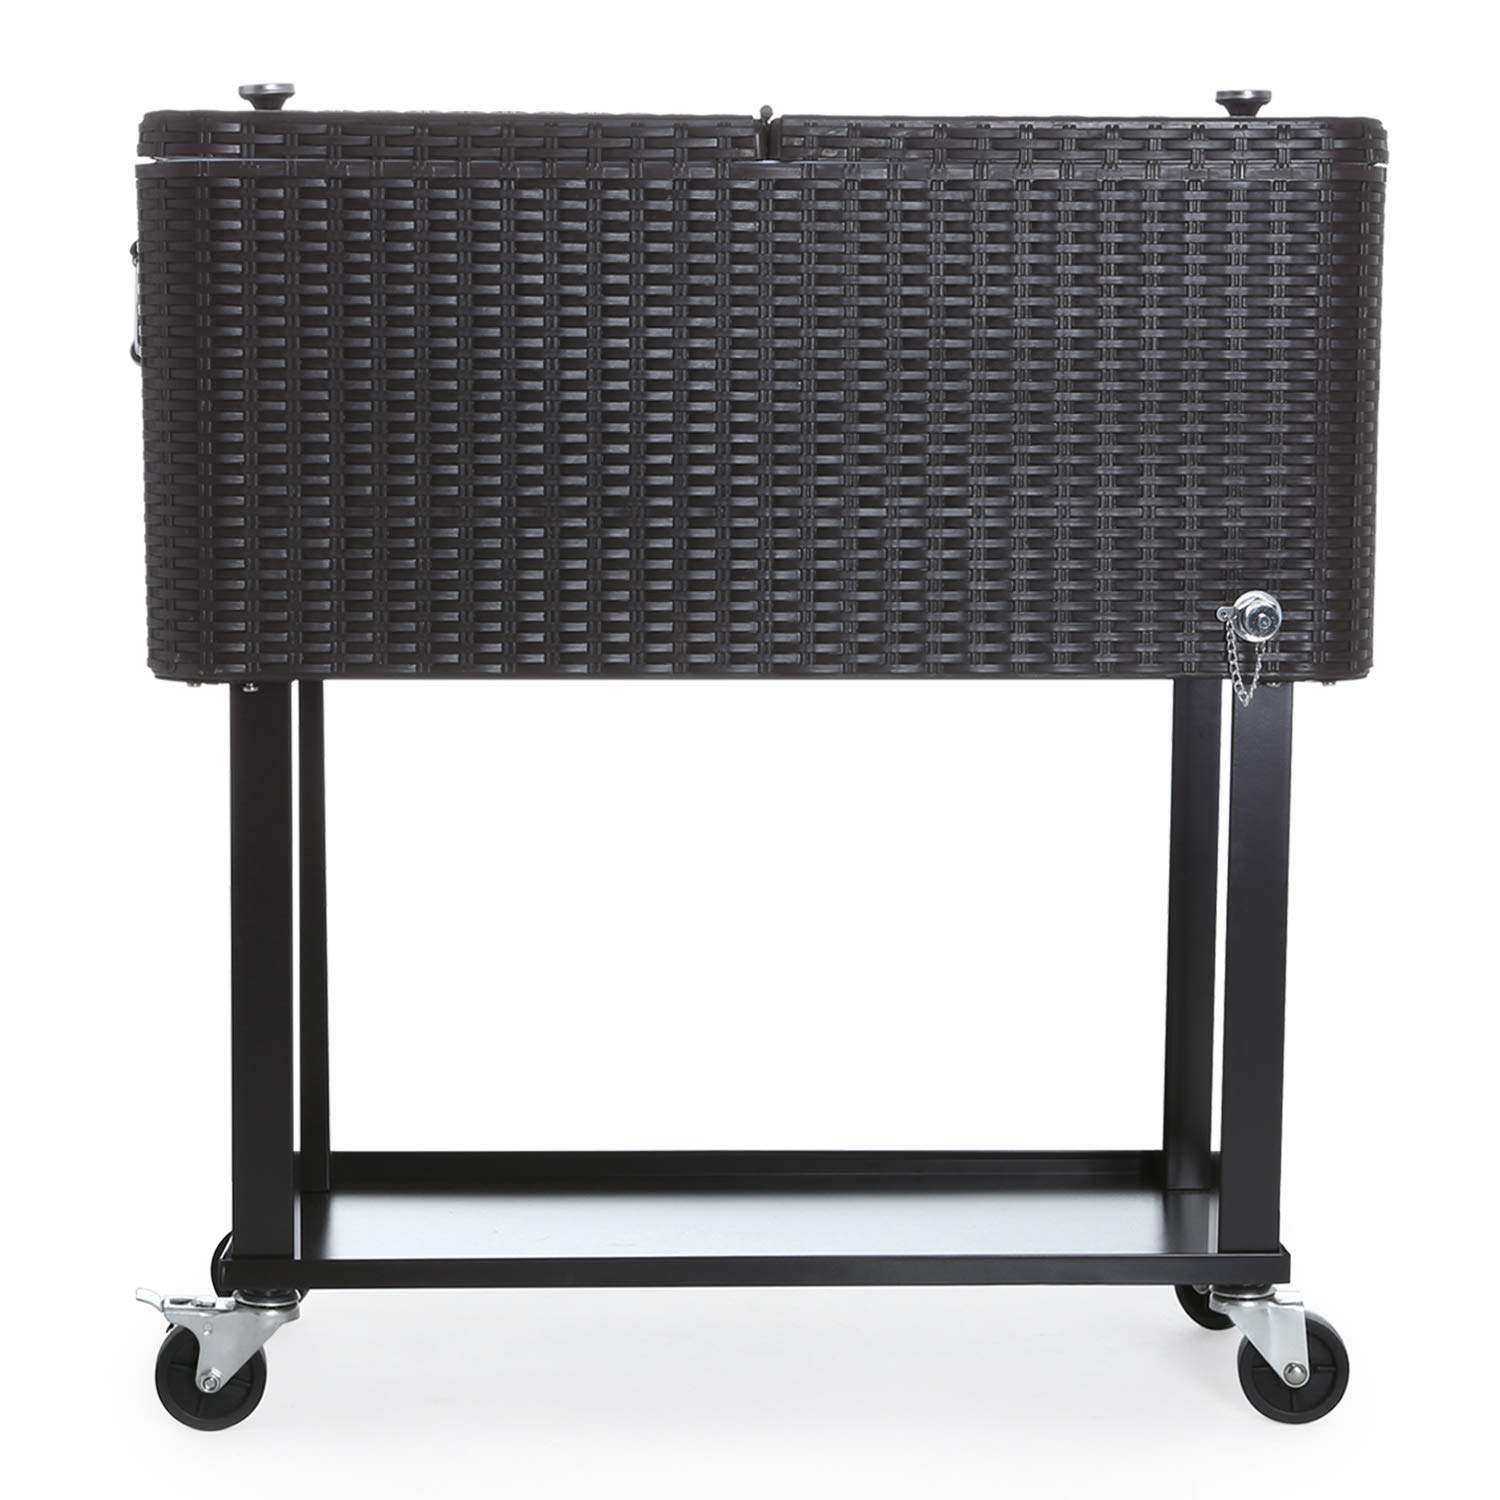 CAIDE-STORE with a Free Cover 80 Quart Outdoor Portable Cooler Patio Ice Chest Cooler Cart on Wheel by CAIDE-STORE (Image #4)